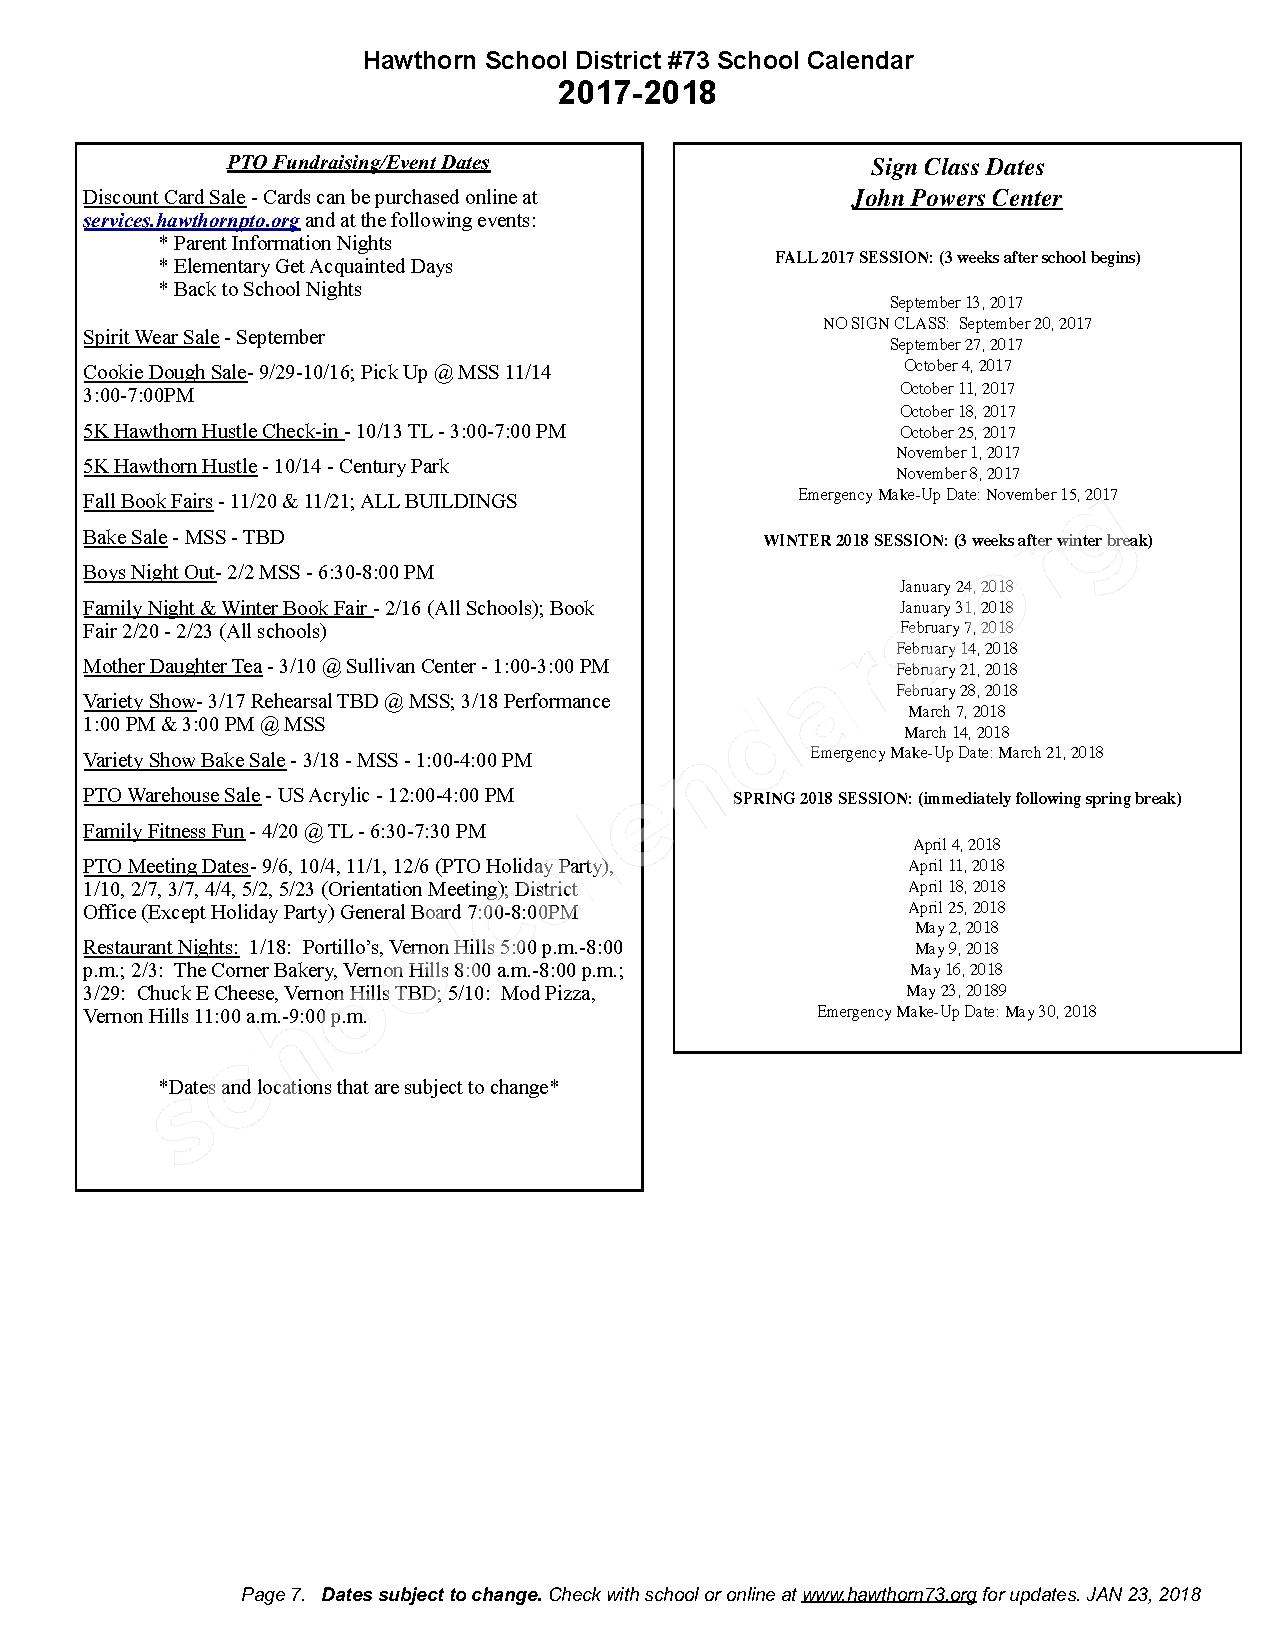 2017 - 2018 Detailed School Calendar – Hawthorn School District 73 – page 7